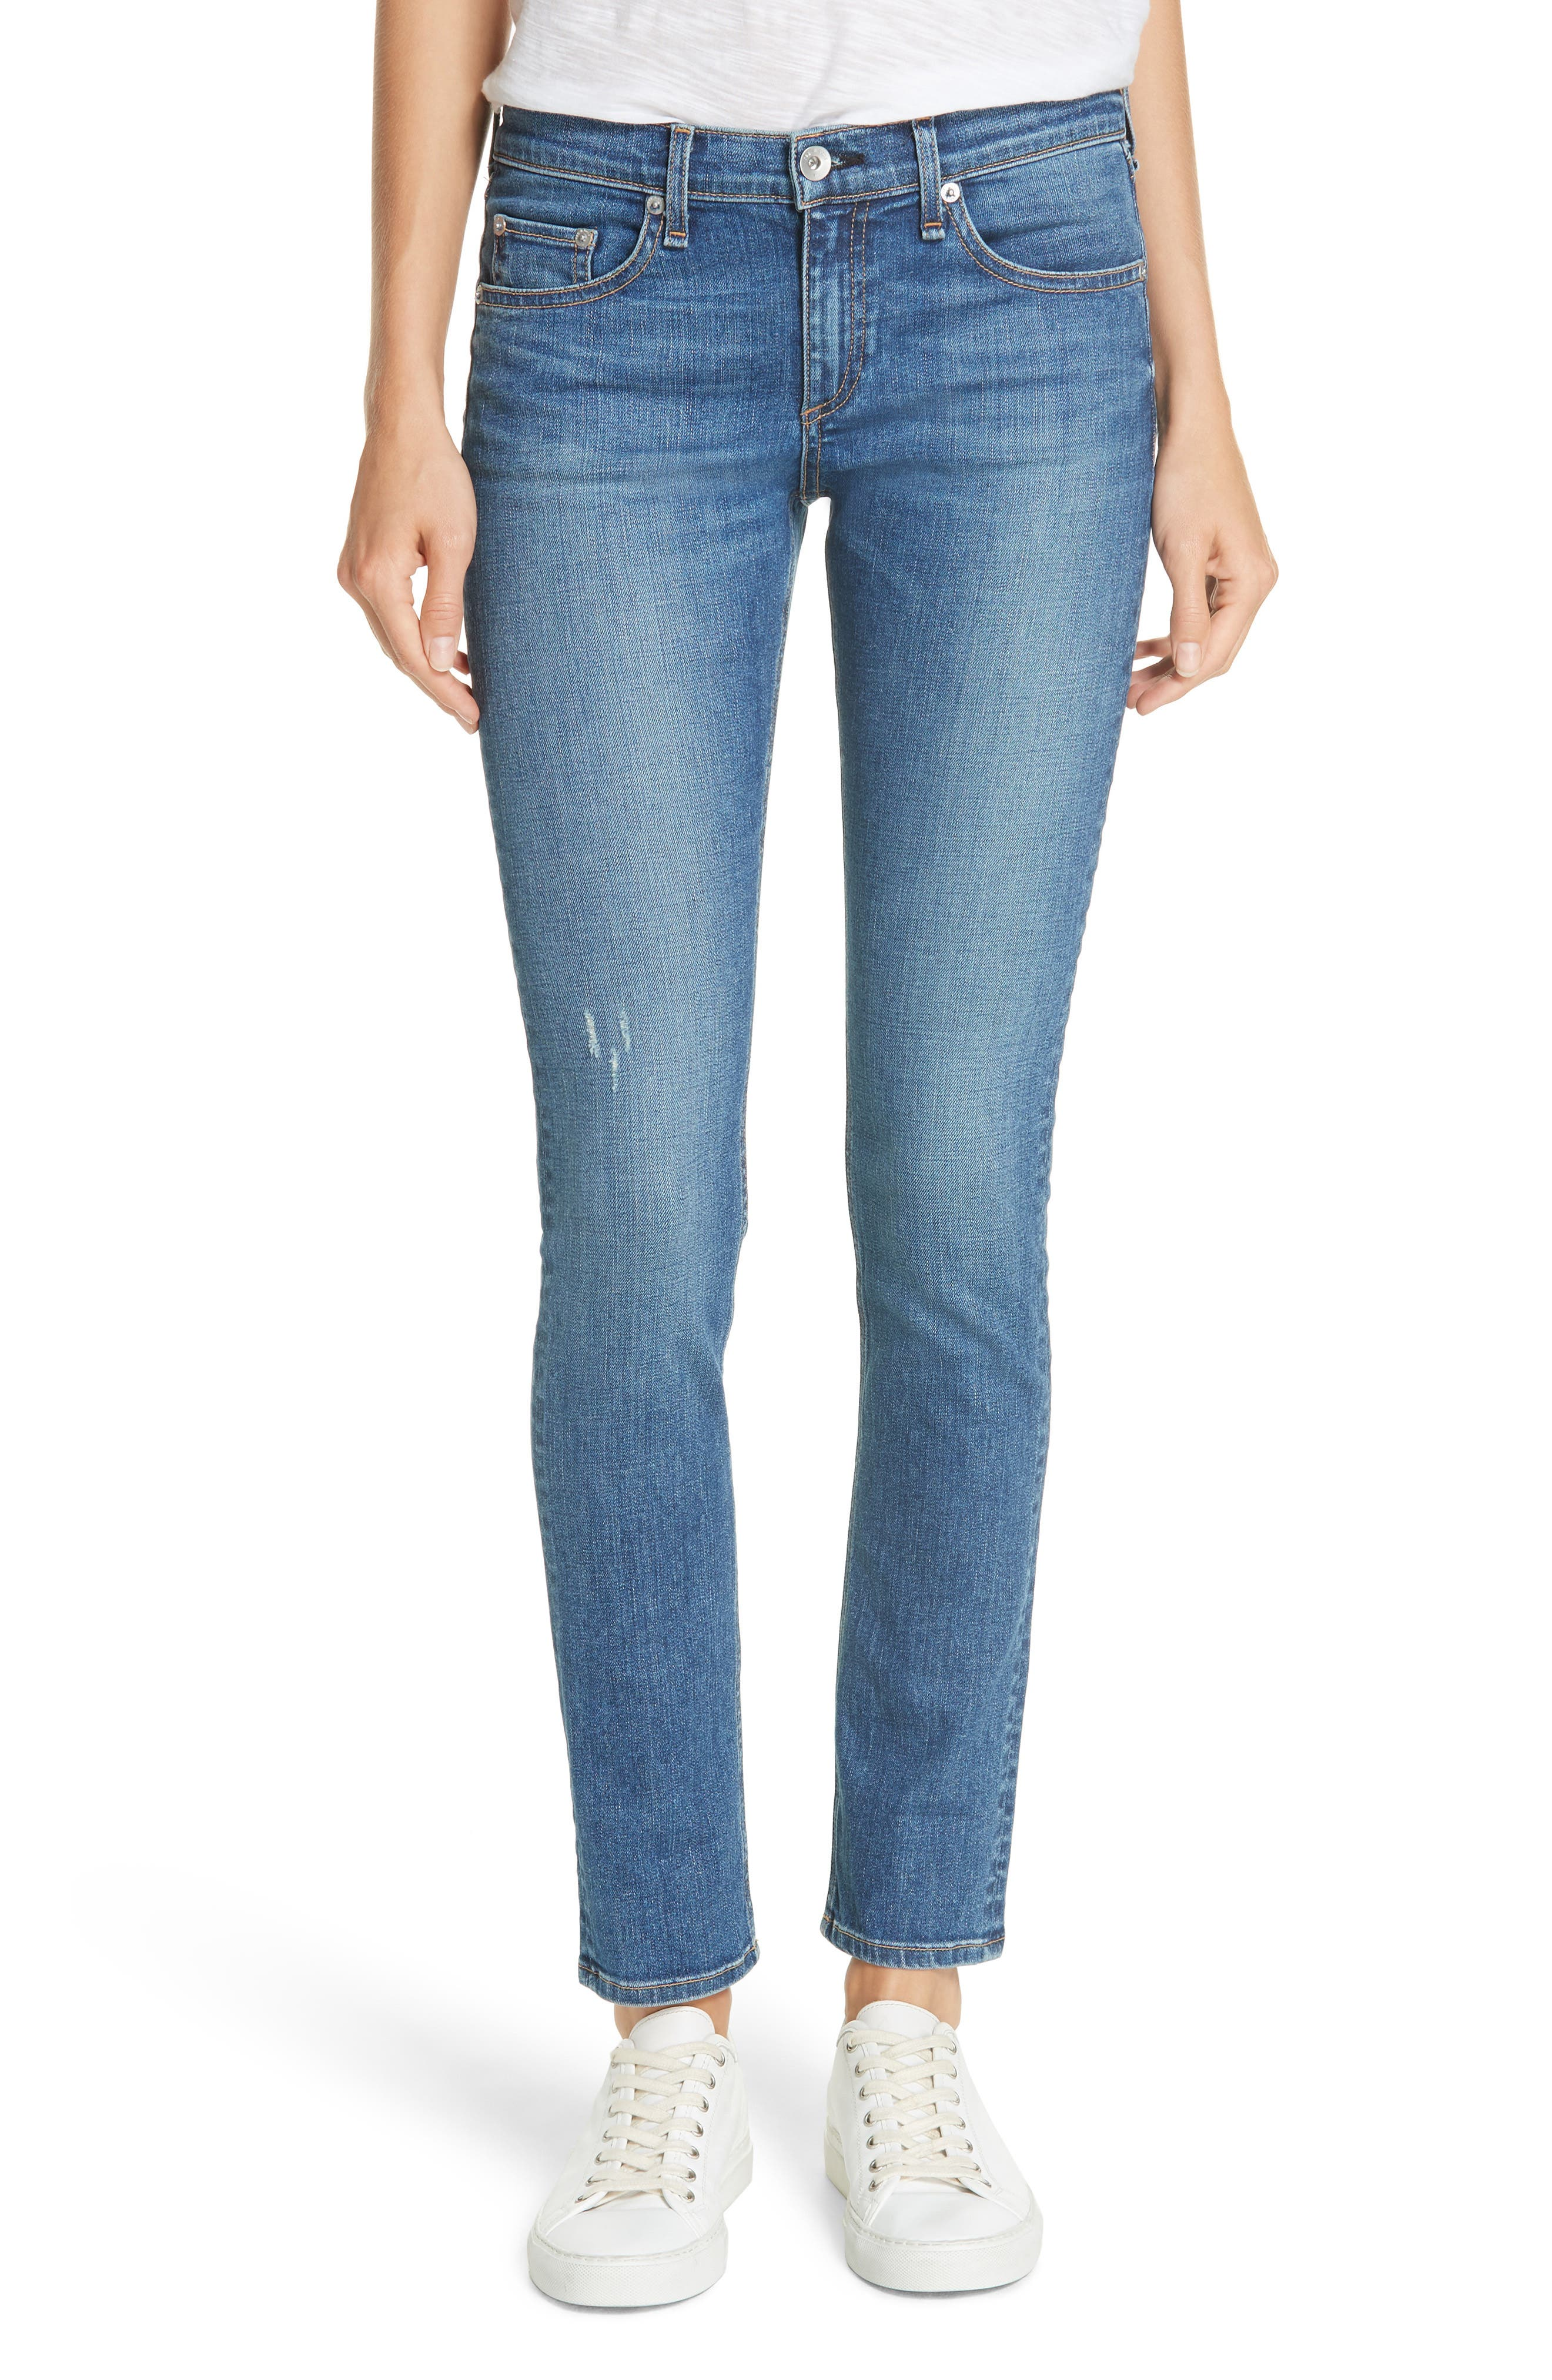 RAG & BONE Skinny Jeans, Main, color, 420